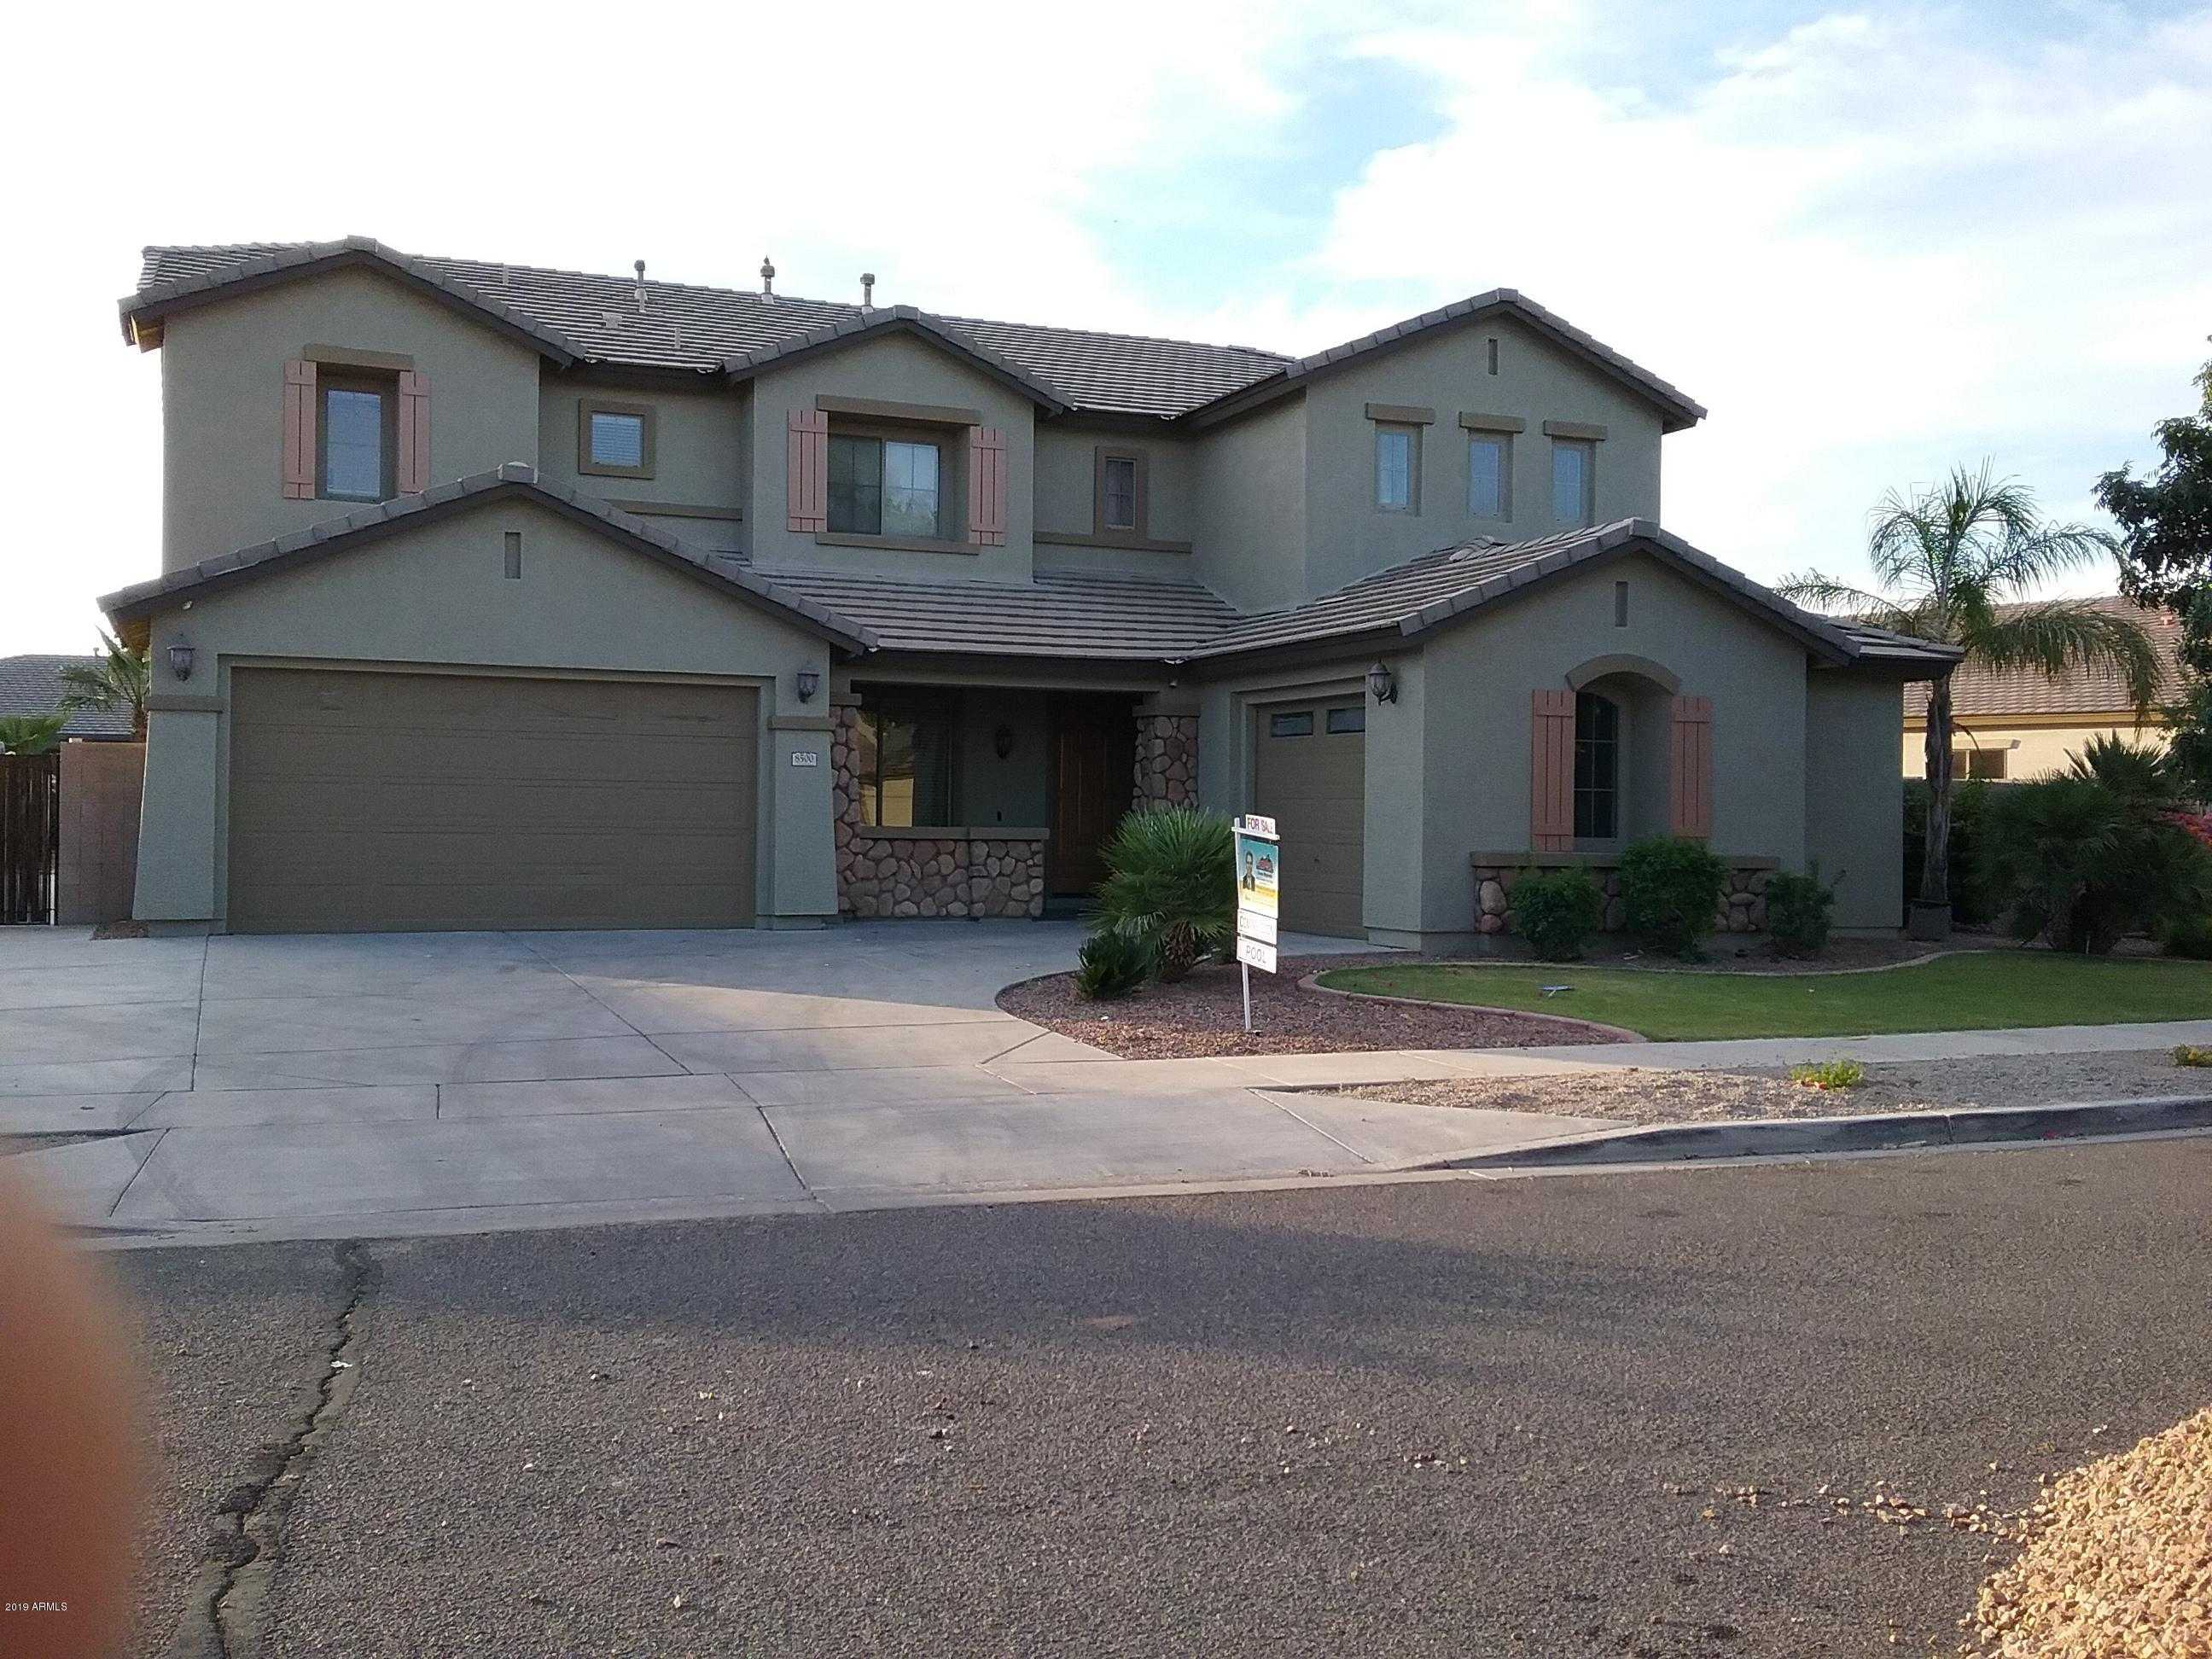 $439,000 - 5Br/3Ba - Home for Sale in Rovey Farm Estates South, Glendale